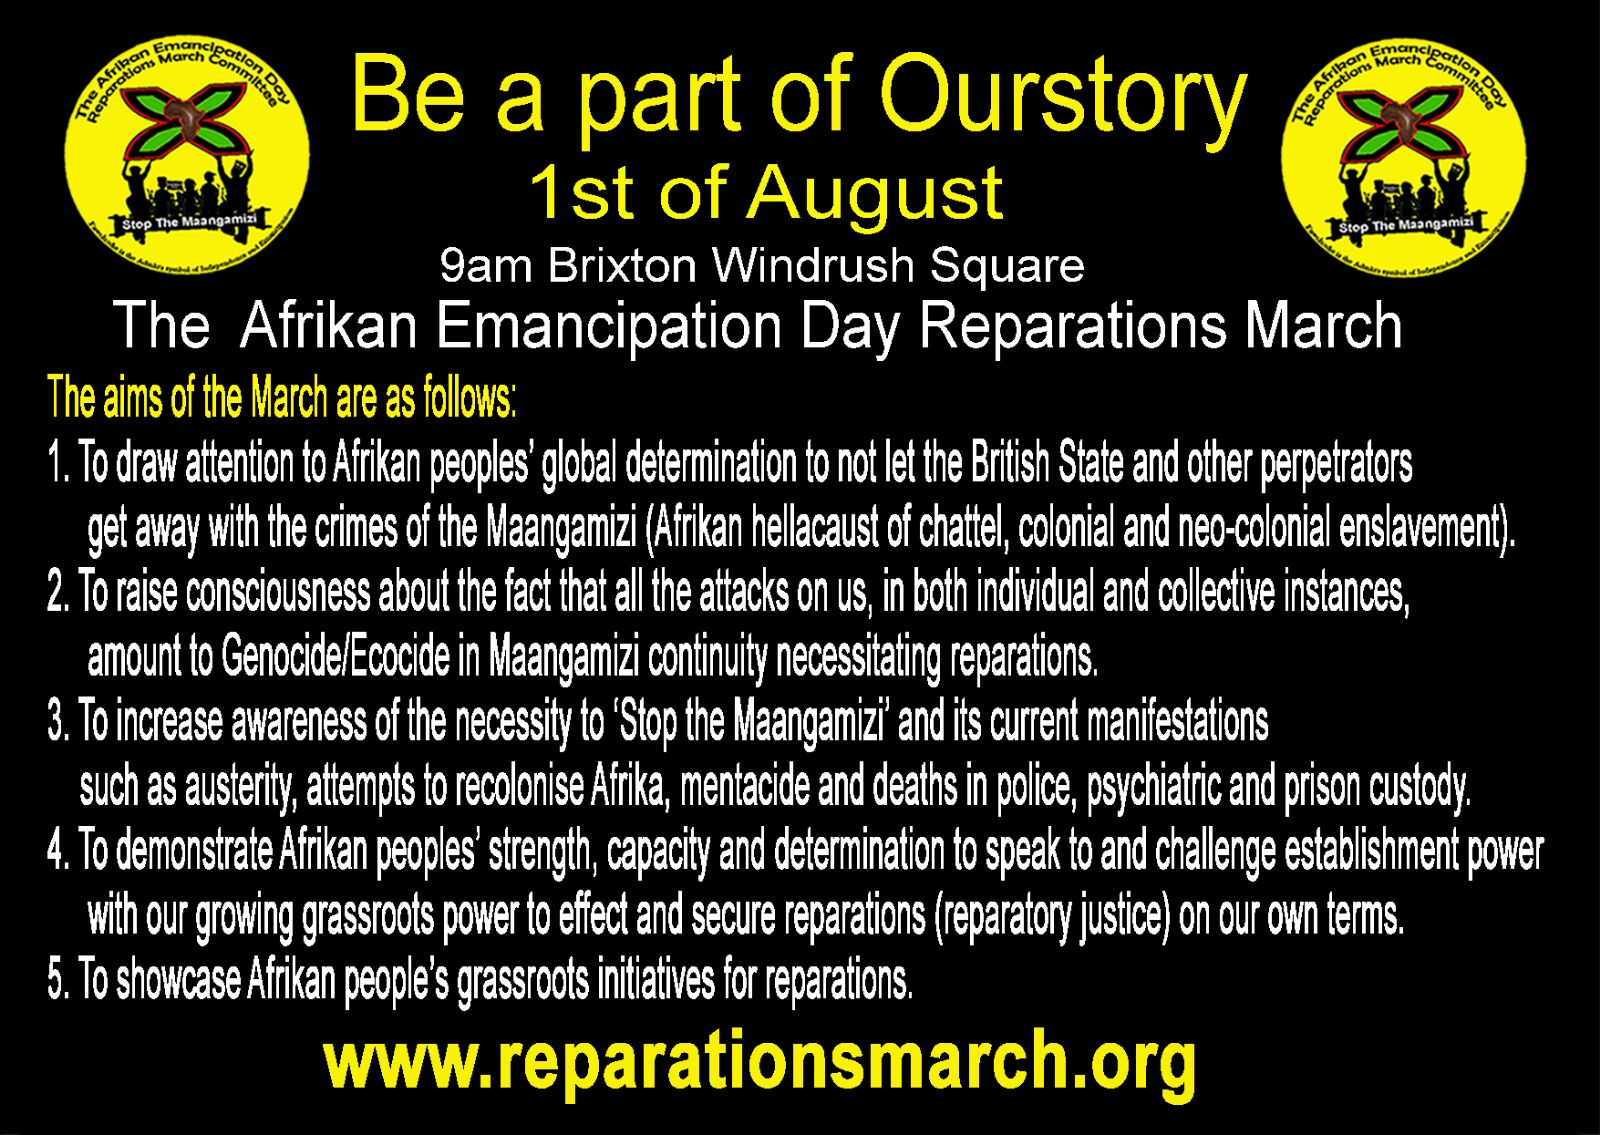 SM AIMS MARCH